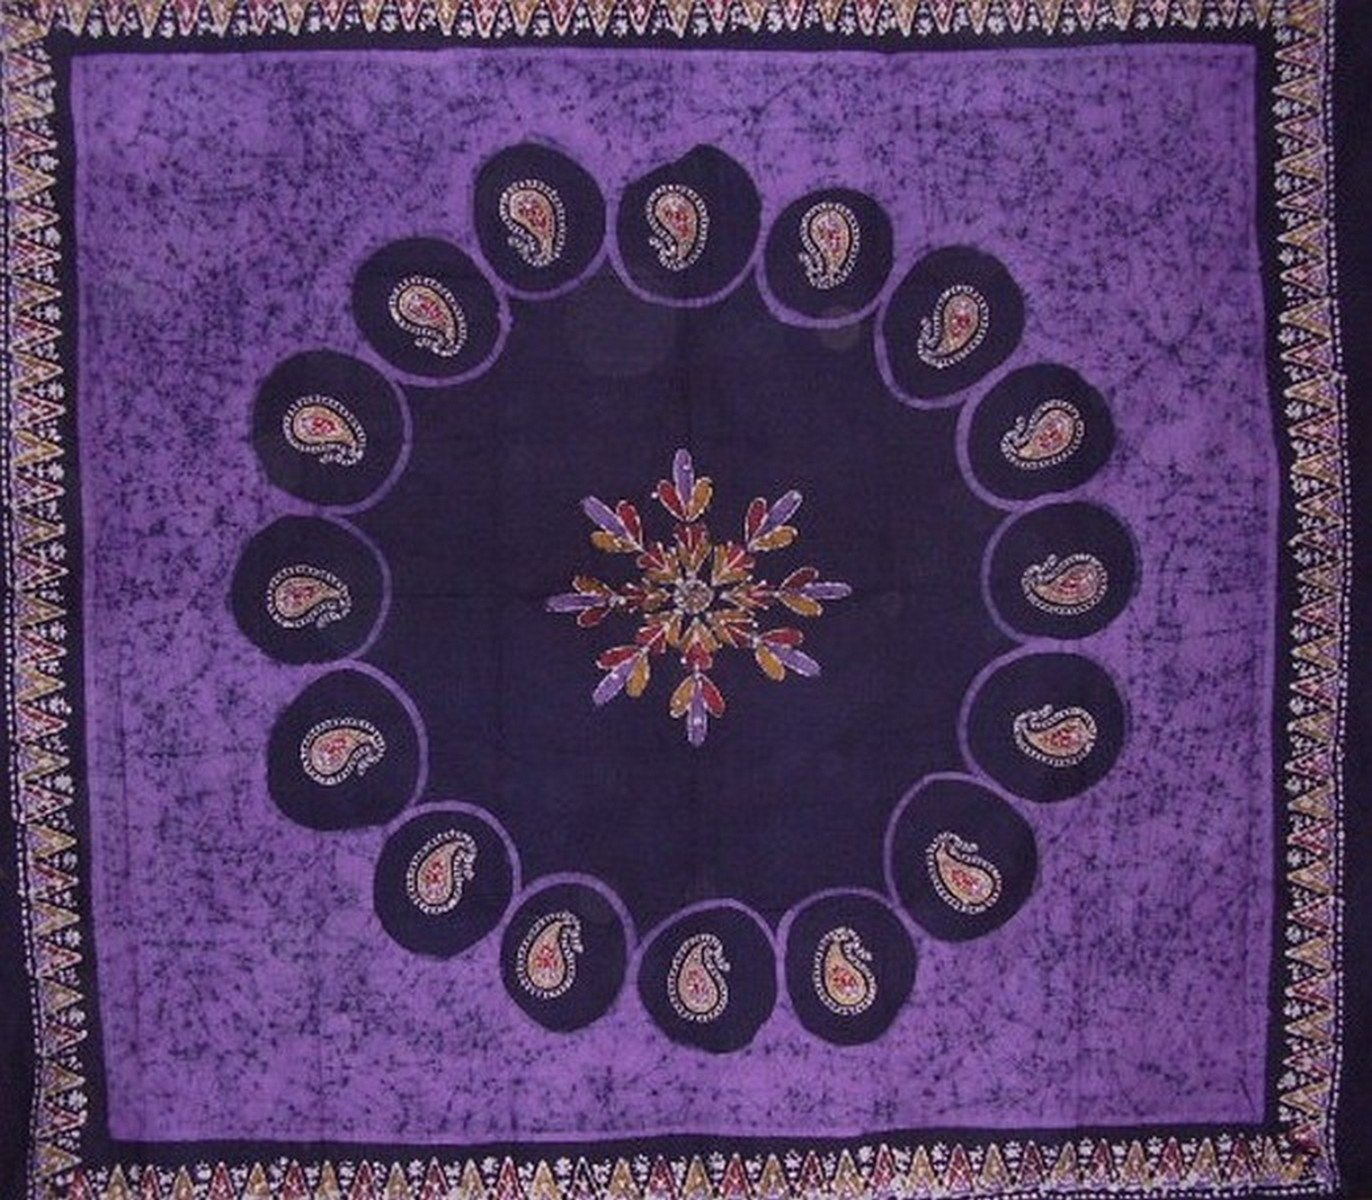 Batik Tapestry Cotton Bedspread 108'' x 108'' Queen-King Purple